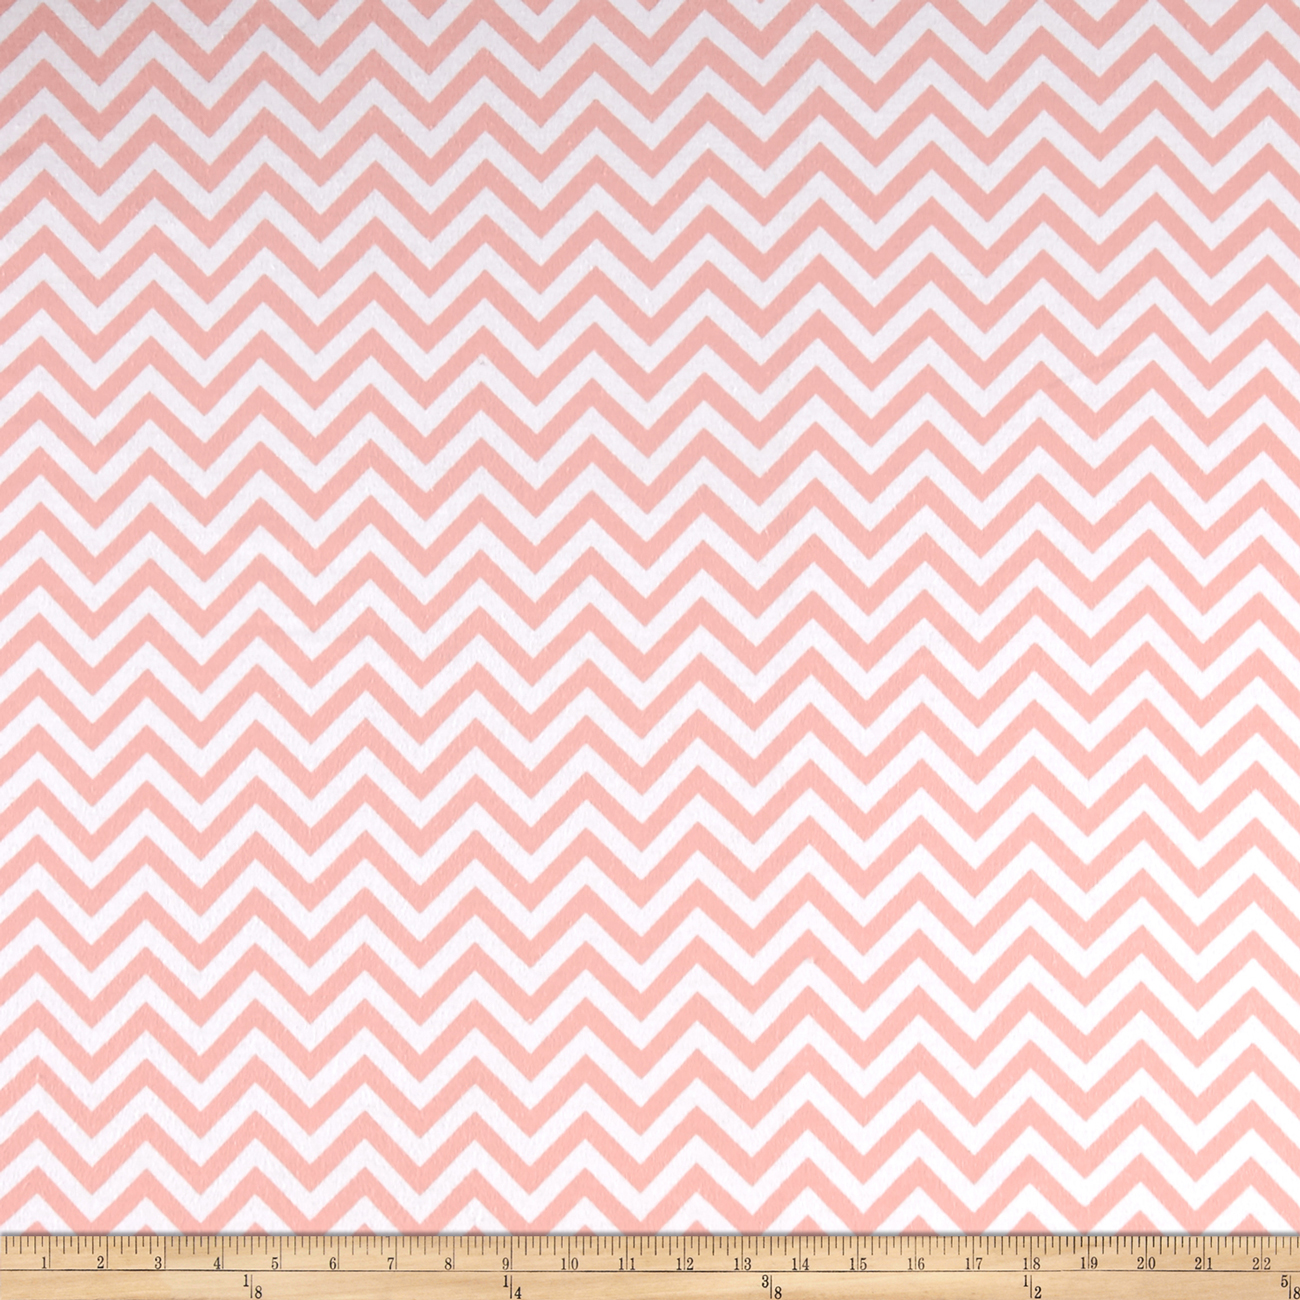 Flannel Chevron Watermelon Fabric